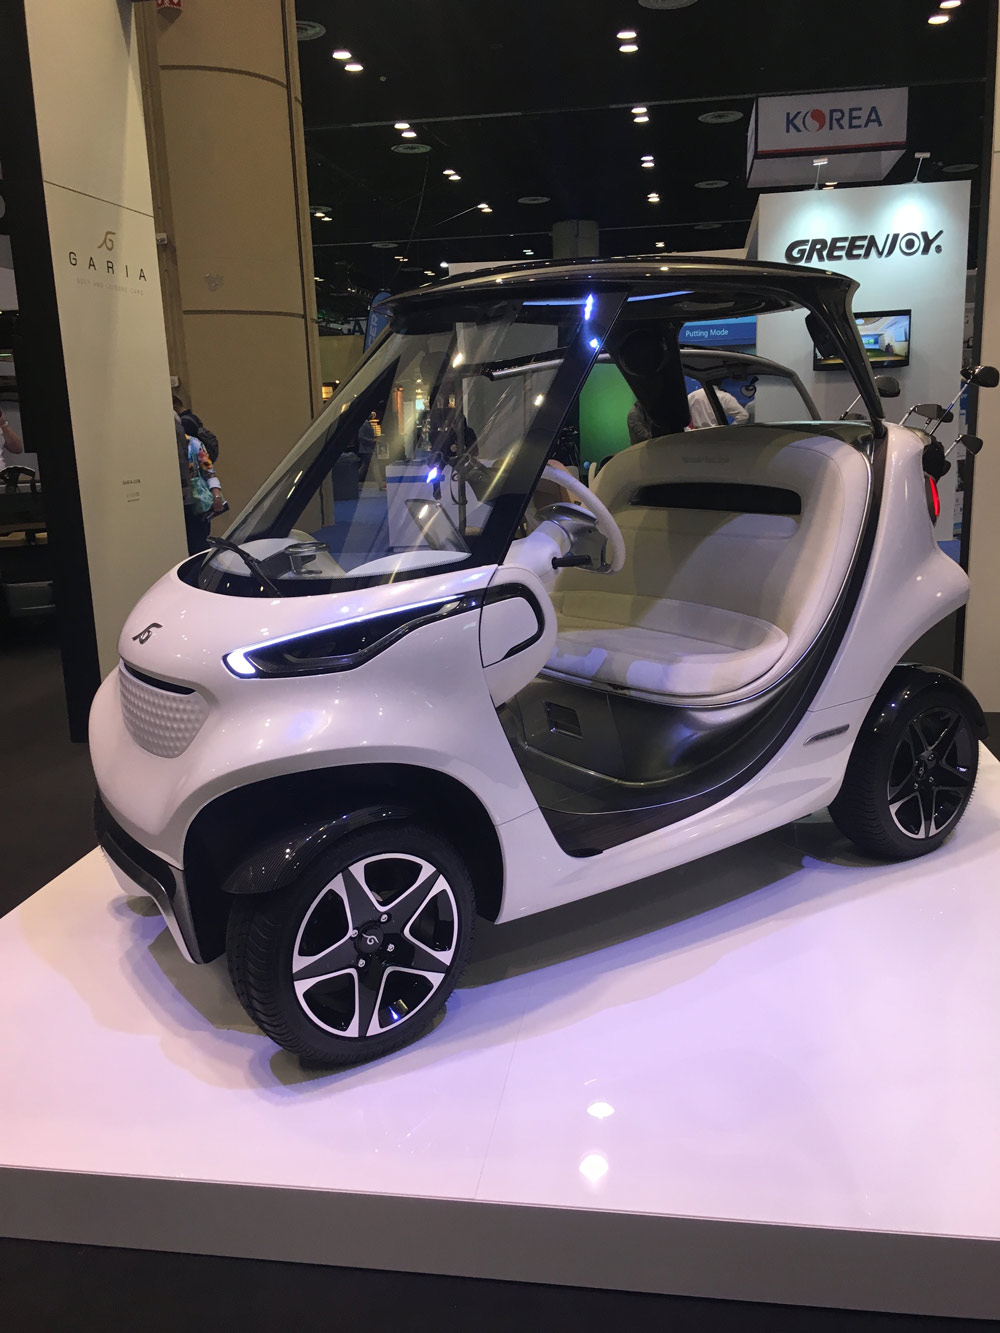 Garia's road-legal, lithium-powered Mercedes-Benz edition golf car can travel up to 35 mph in the U.S. and will be officially launched at the Geneva motor show later this year. Price TBD. garia.com